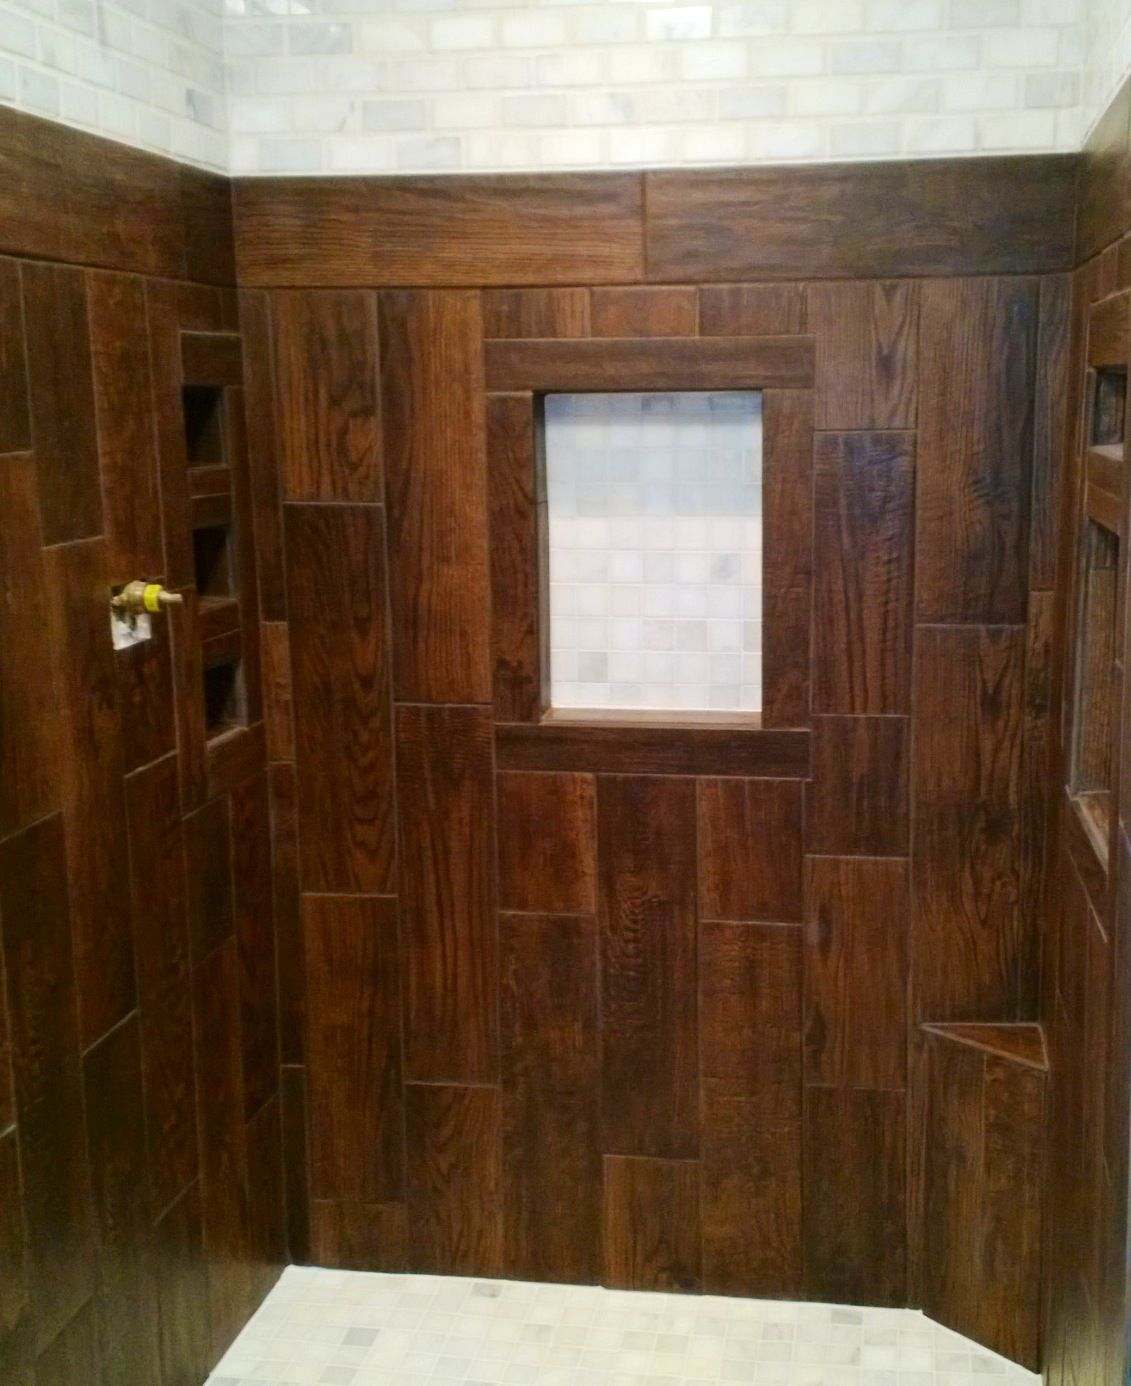 Shower Stall Ceramic Tile That Looks Like Wood Also Used Subway